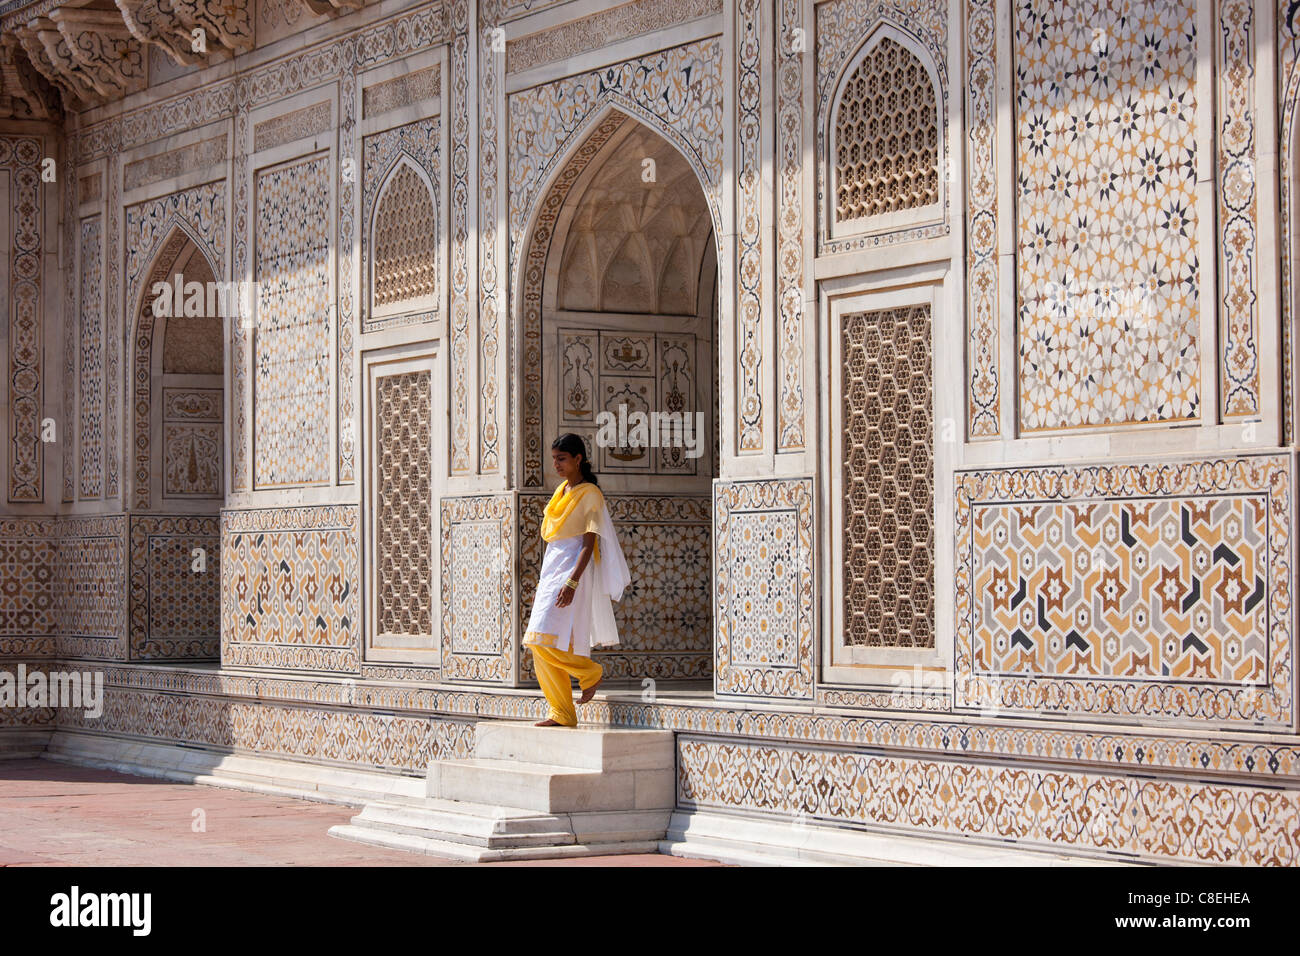 Muslim Punjabi girl at Tomb of Etimad Ud Doulah, 17th Century Mughal tomb built 1628, Agra, India - Stock Image